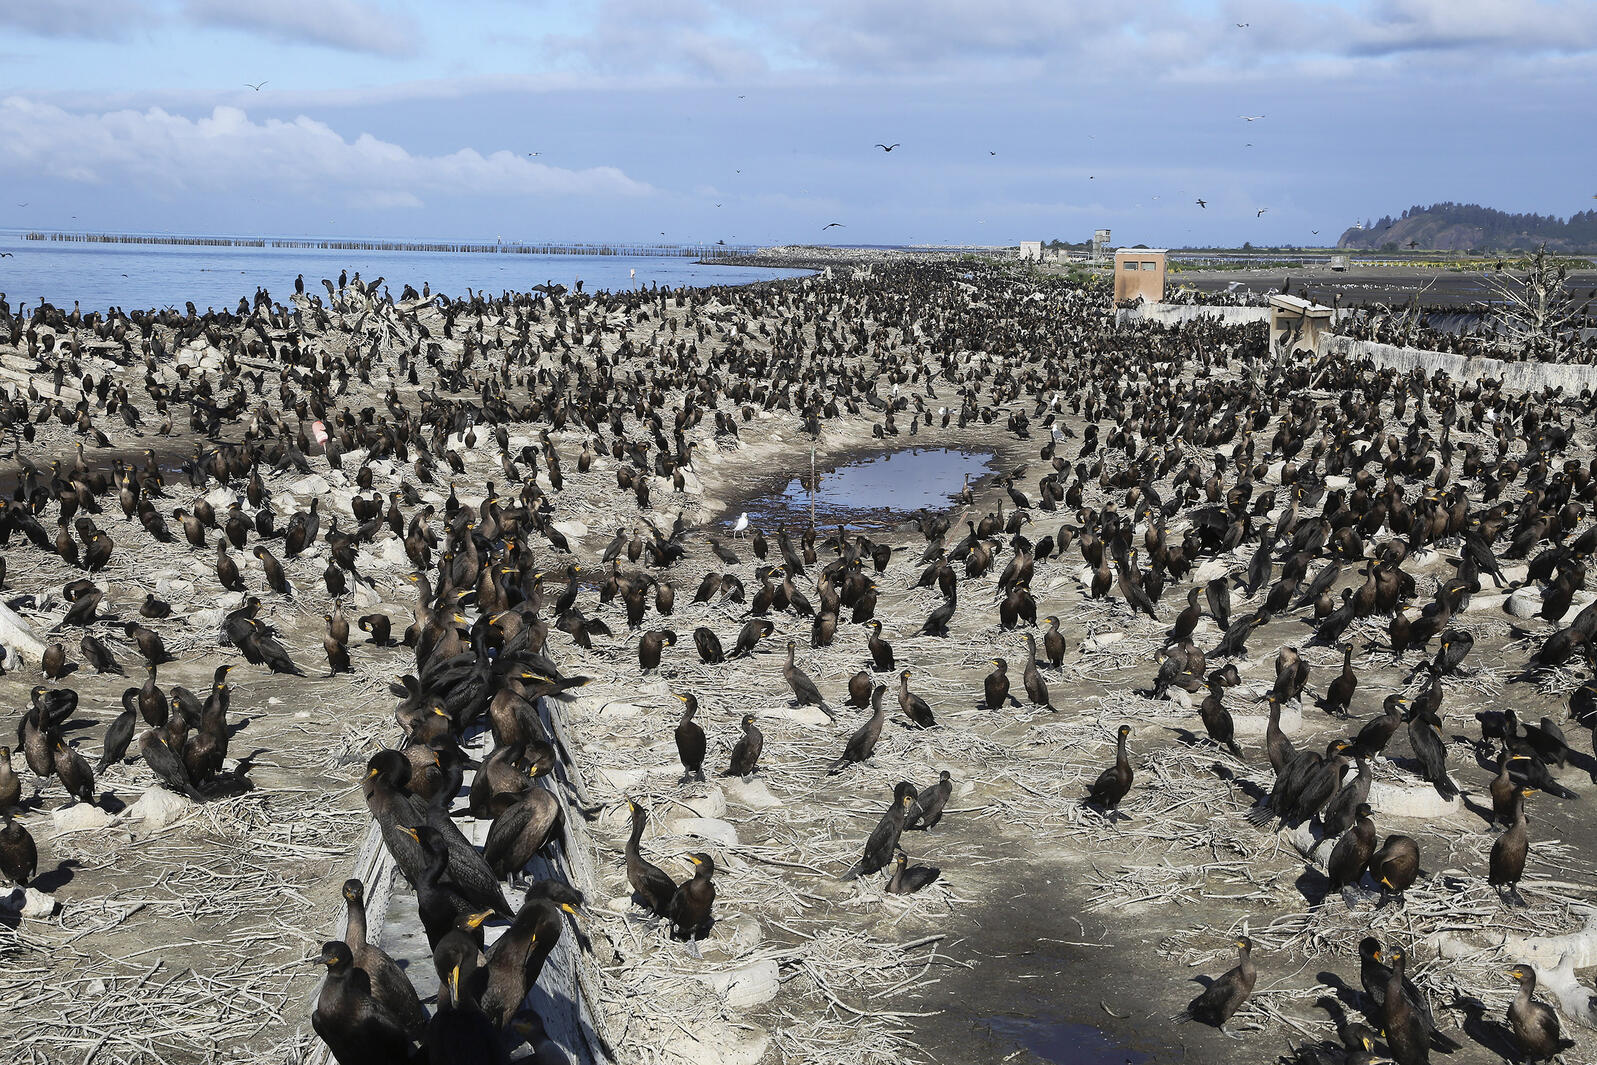 Double-crested Cormorants (and a few gulls) occupy their shrinking quarters on East Sand Island. Jim Wilson/New York Times/Redux